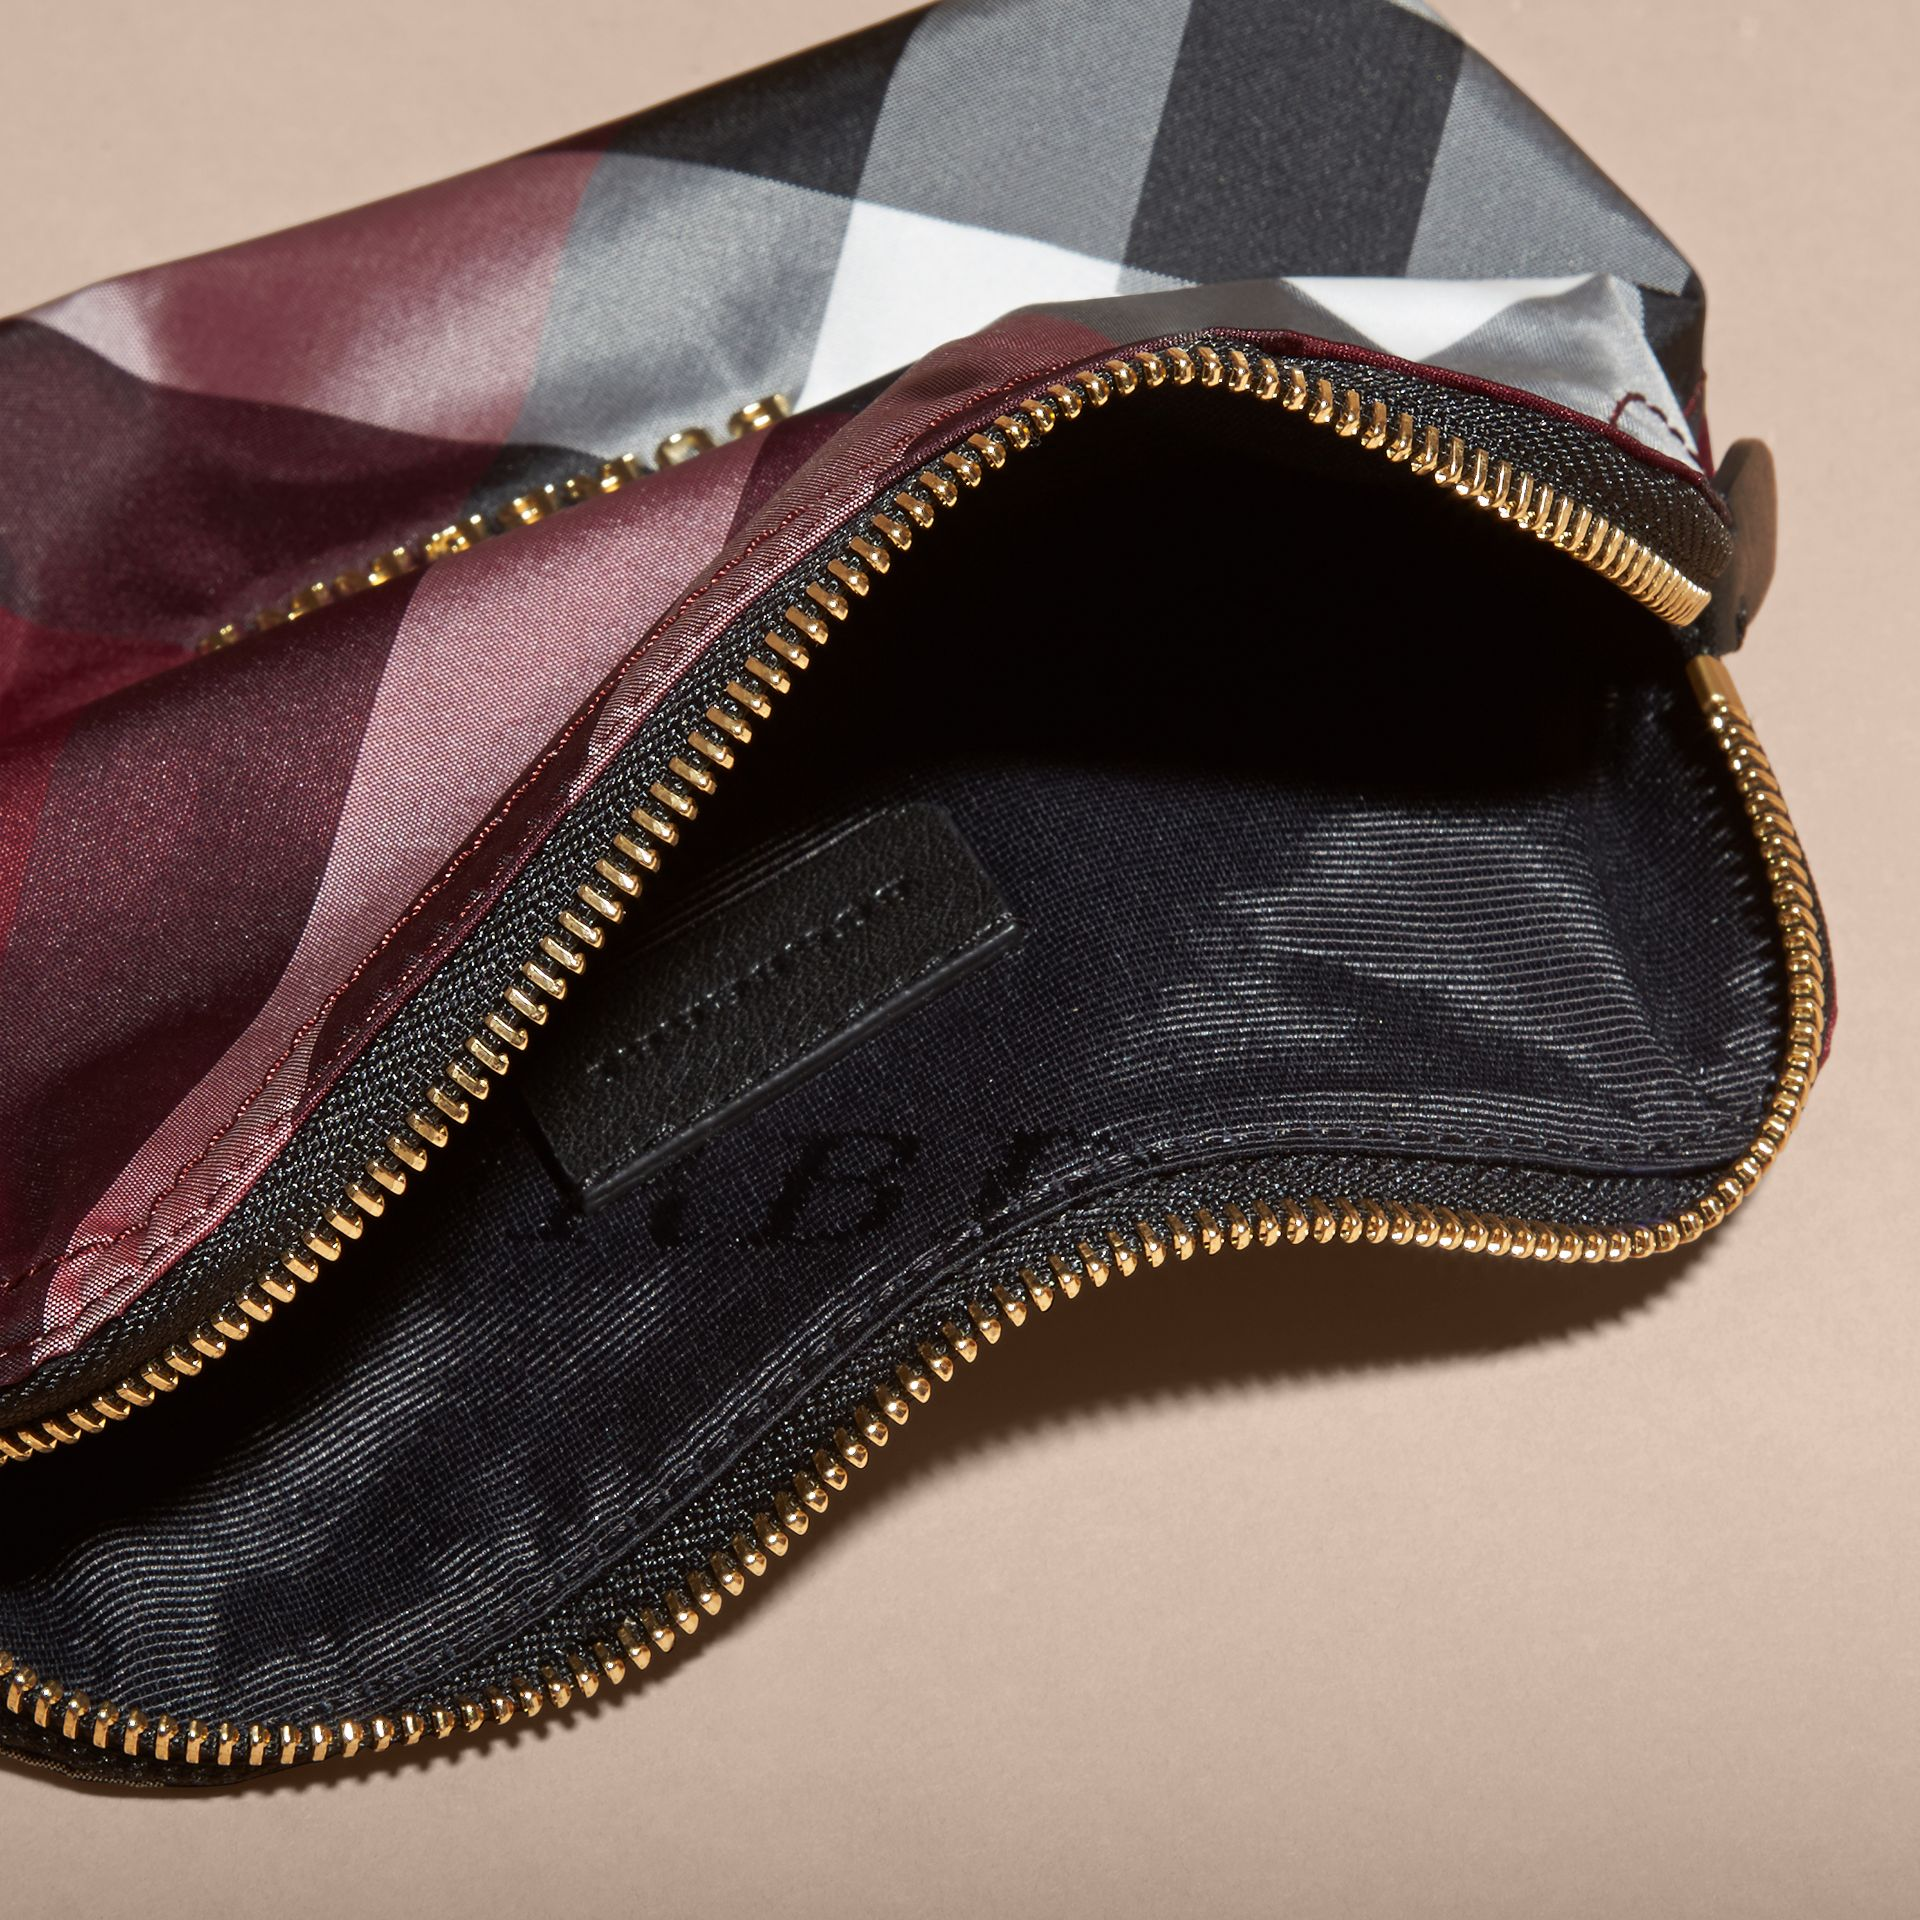 Medium Zip-top Check Technical Pouch in Plum - Women | Burberry - gallery image 5